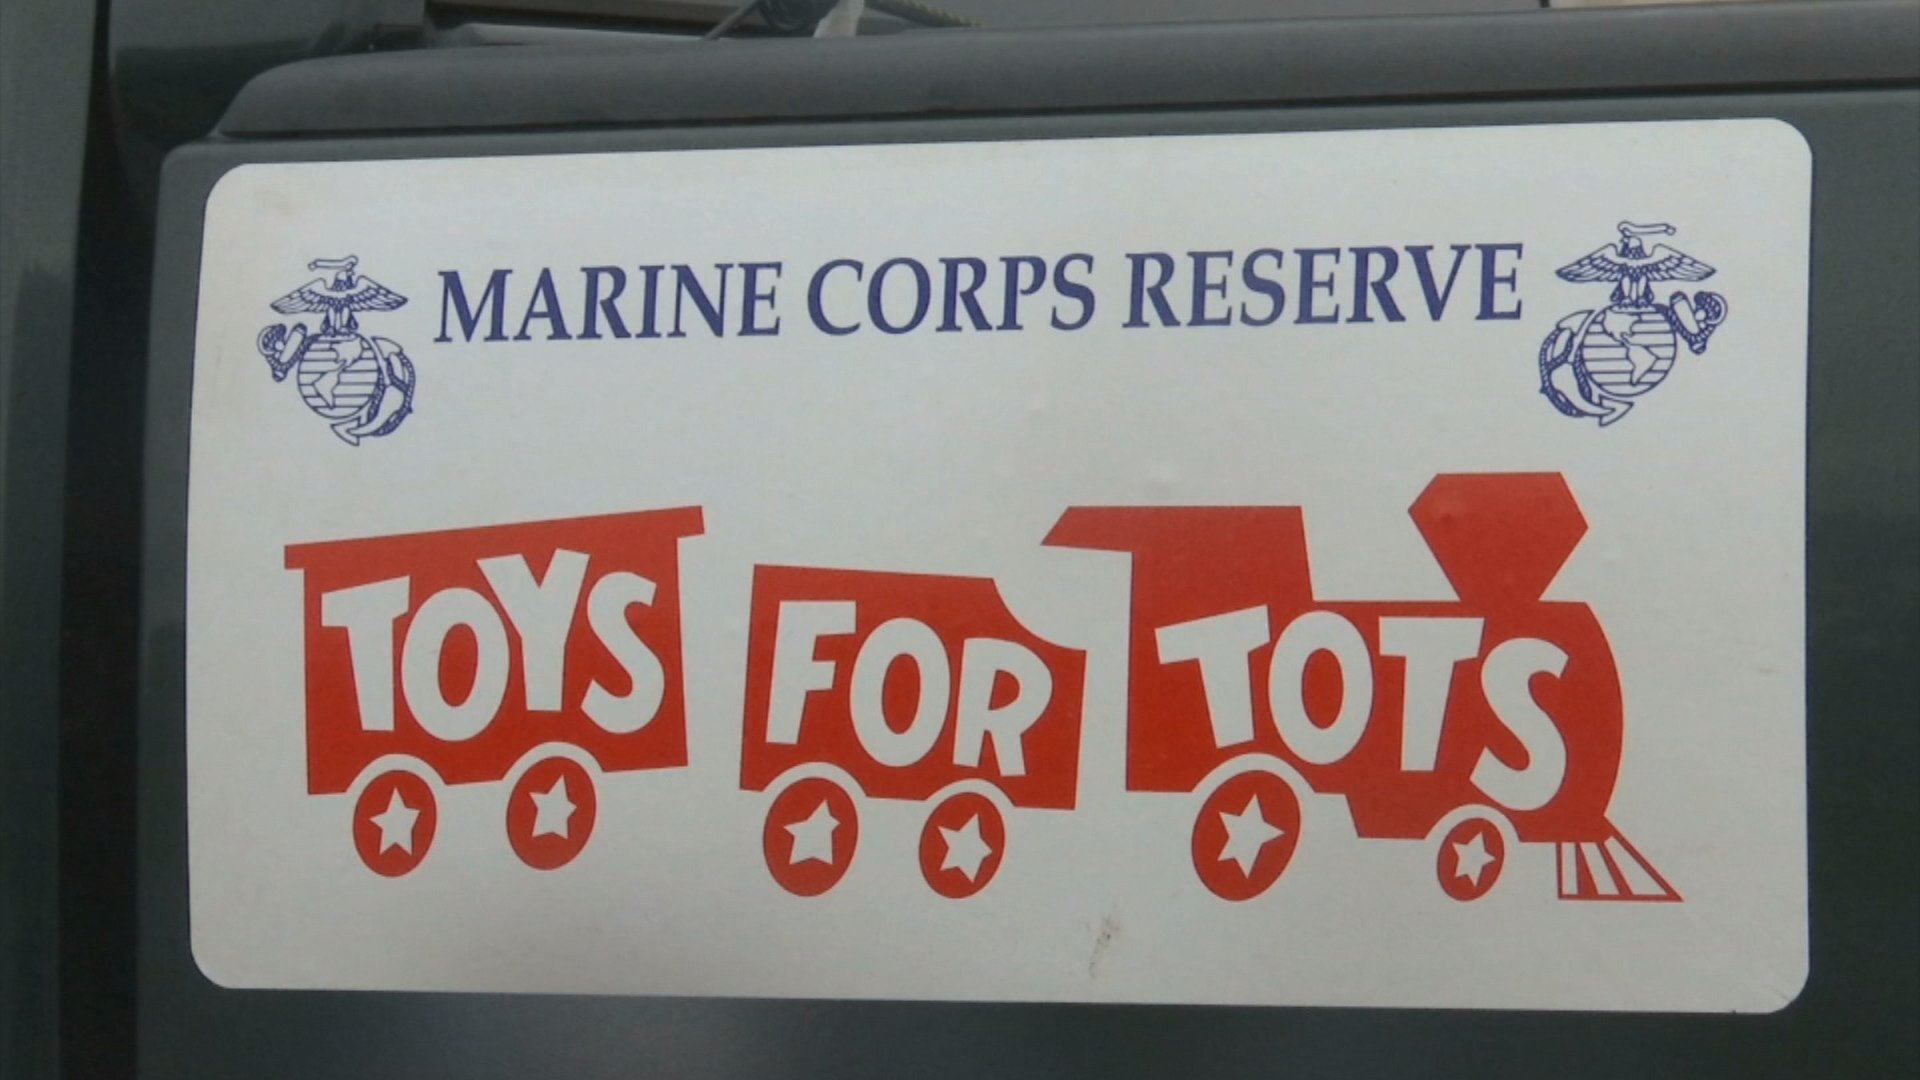 Mike's Carwash donates thousands to Toys for Tots